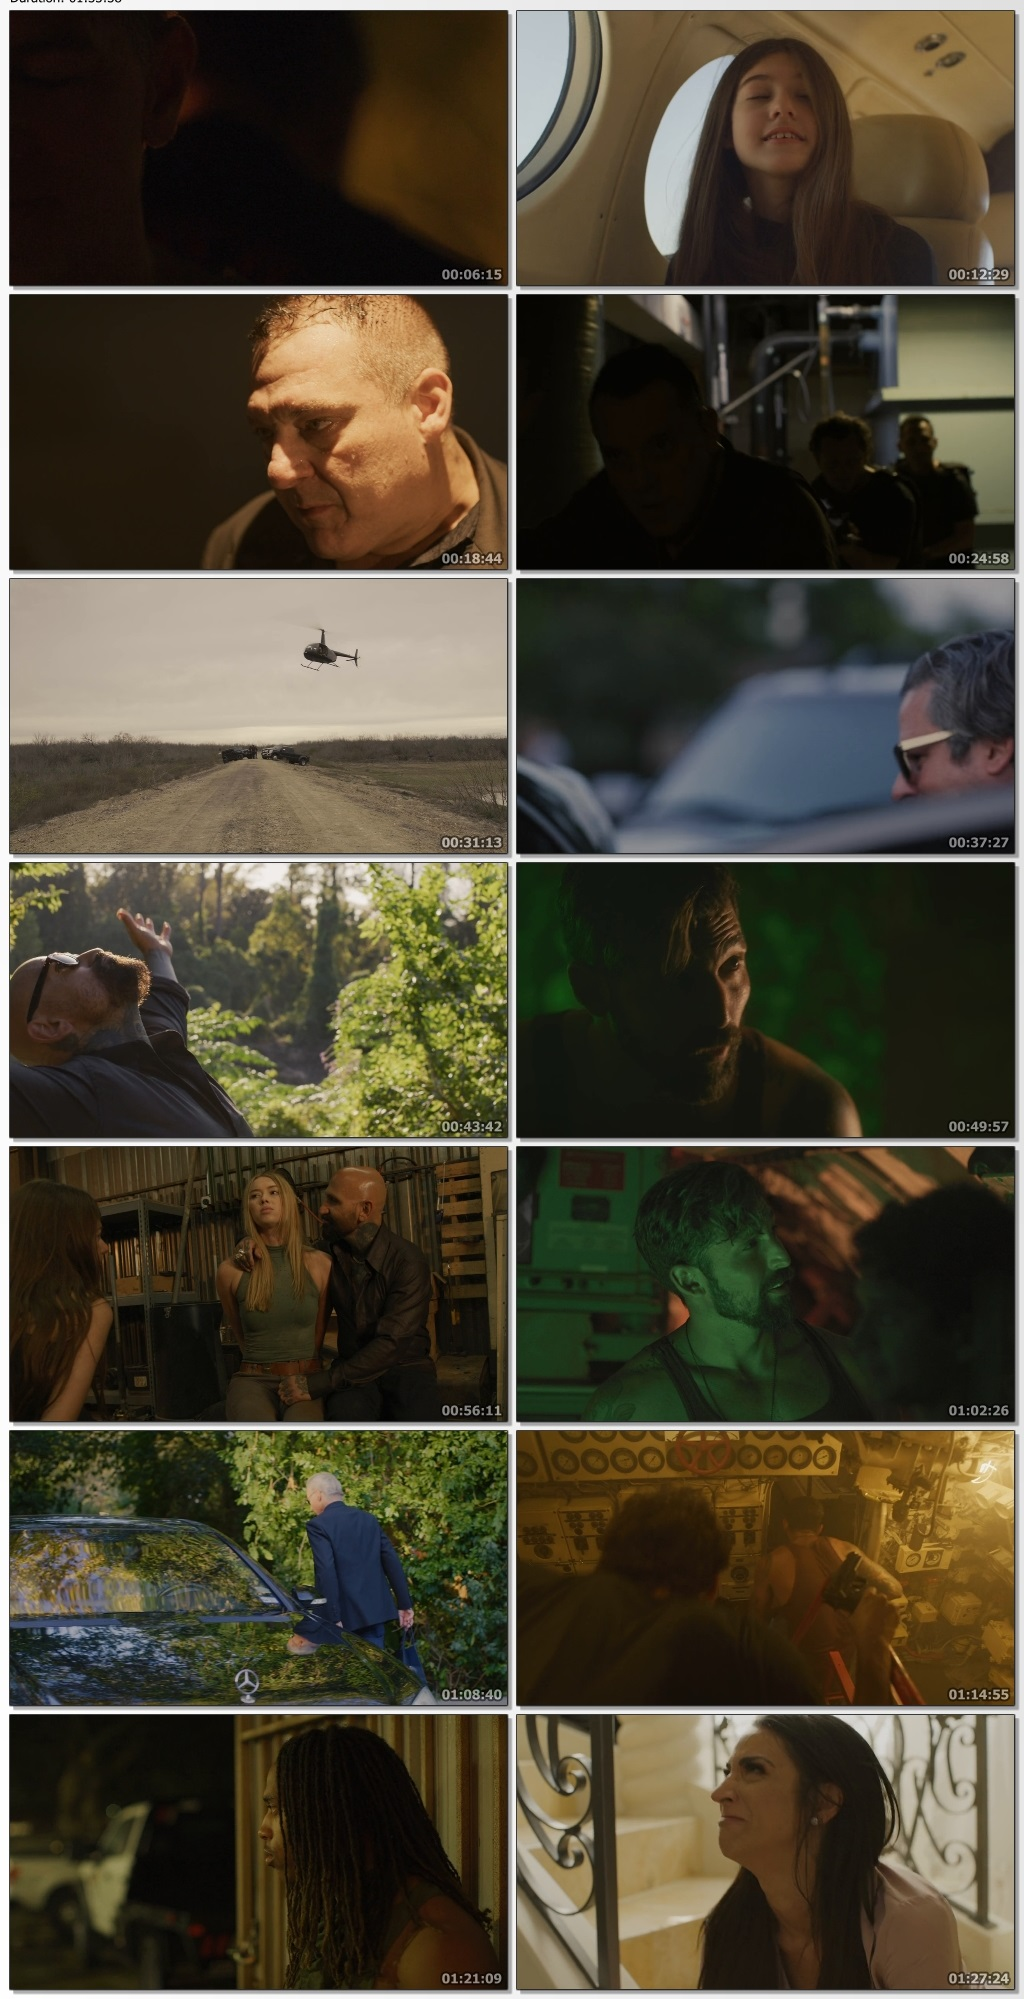 Narco-Sub-2021-English-720p-WEB-DL-x264-AAC-850-MB-com-mkv-thumbs